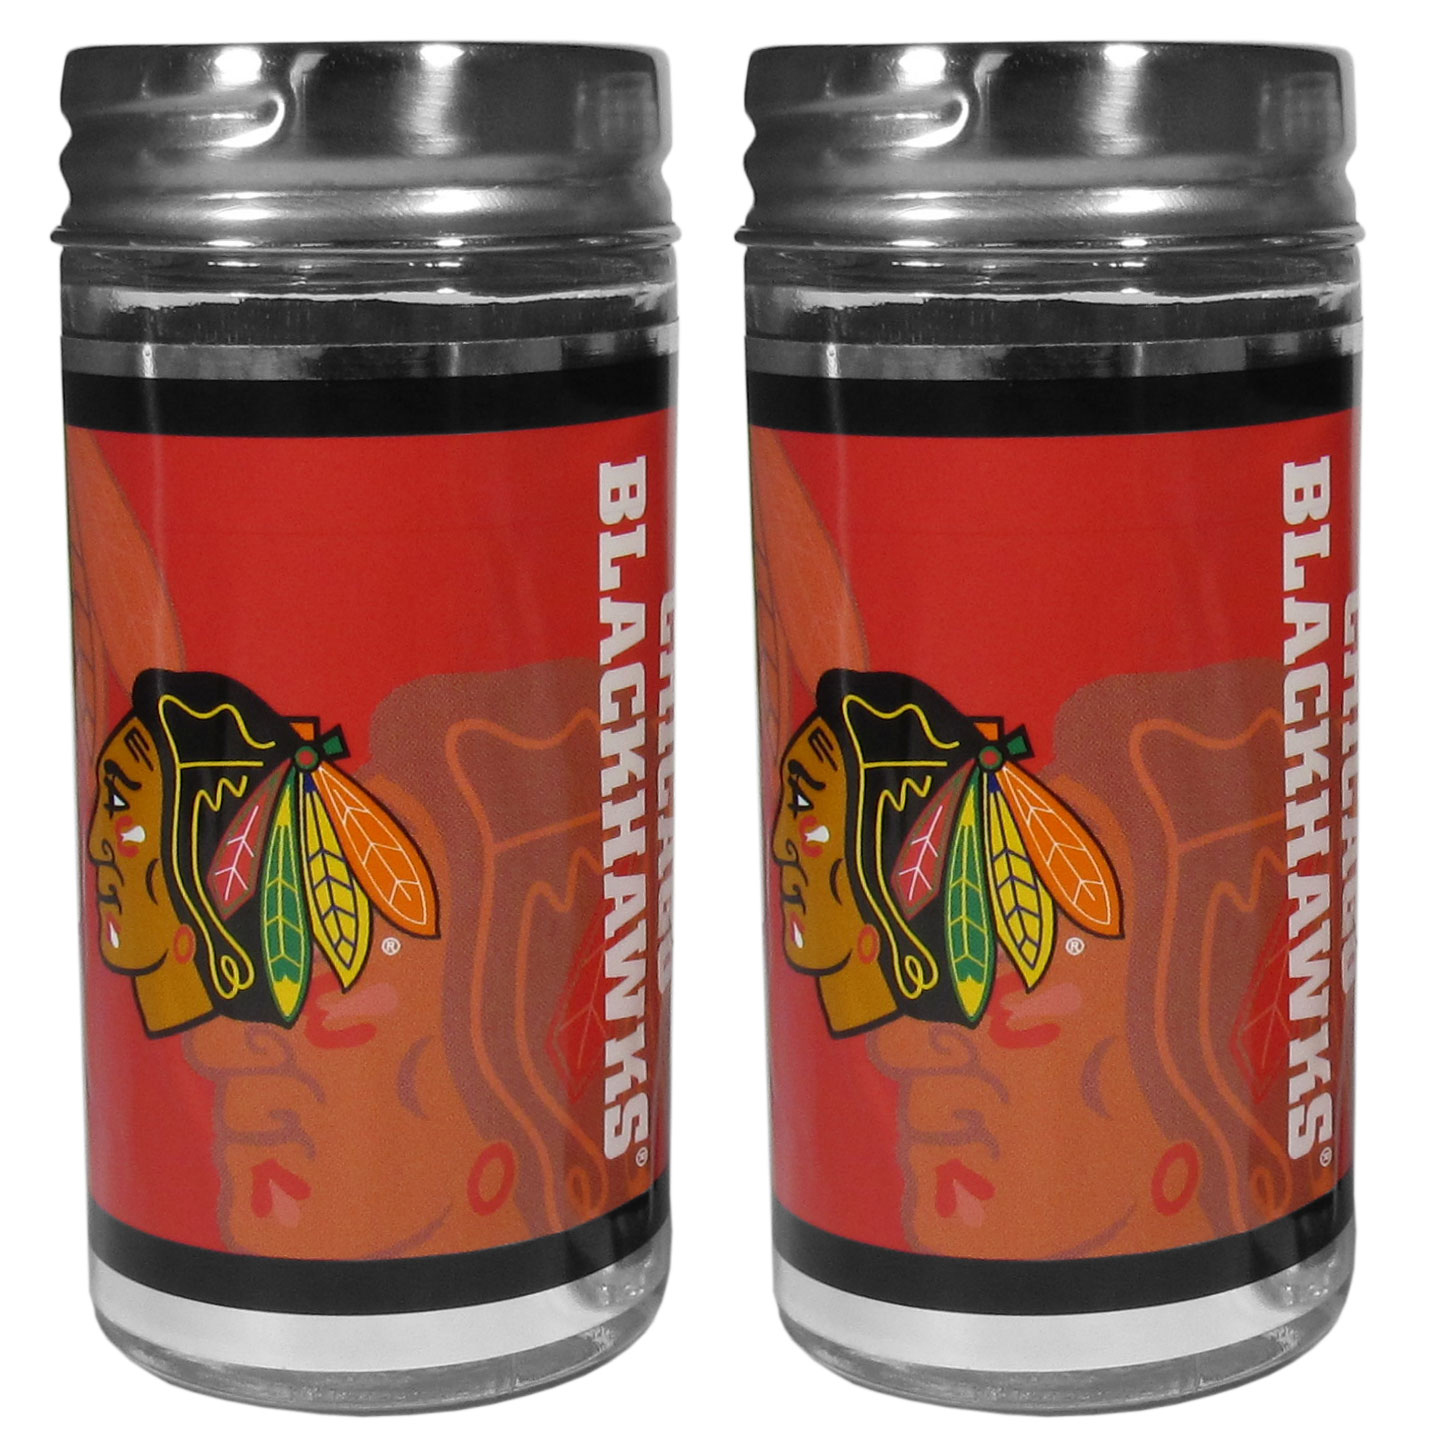 Chicago Blackhawks® Tailgater Salt & Pepper Shakers - No tailgate party is complete without your Chicago Blackhawks® salt & pepper shakers featuring bright team graphics. The glass shakers are 3.75 inches tall and the screw top lids have holes that spell out P and S. These team shakers are a great grill accessory whether you are barbecuing on the patio, picnicing or having a game day party.